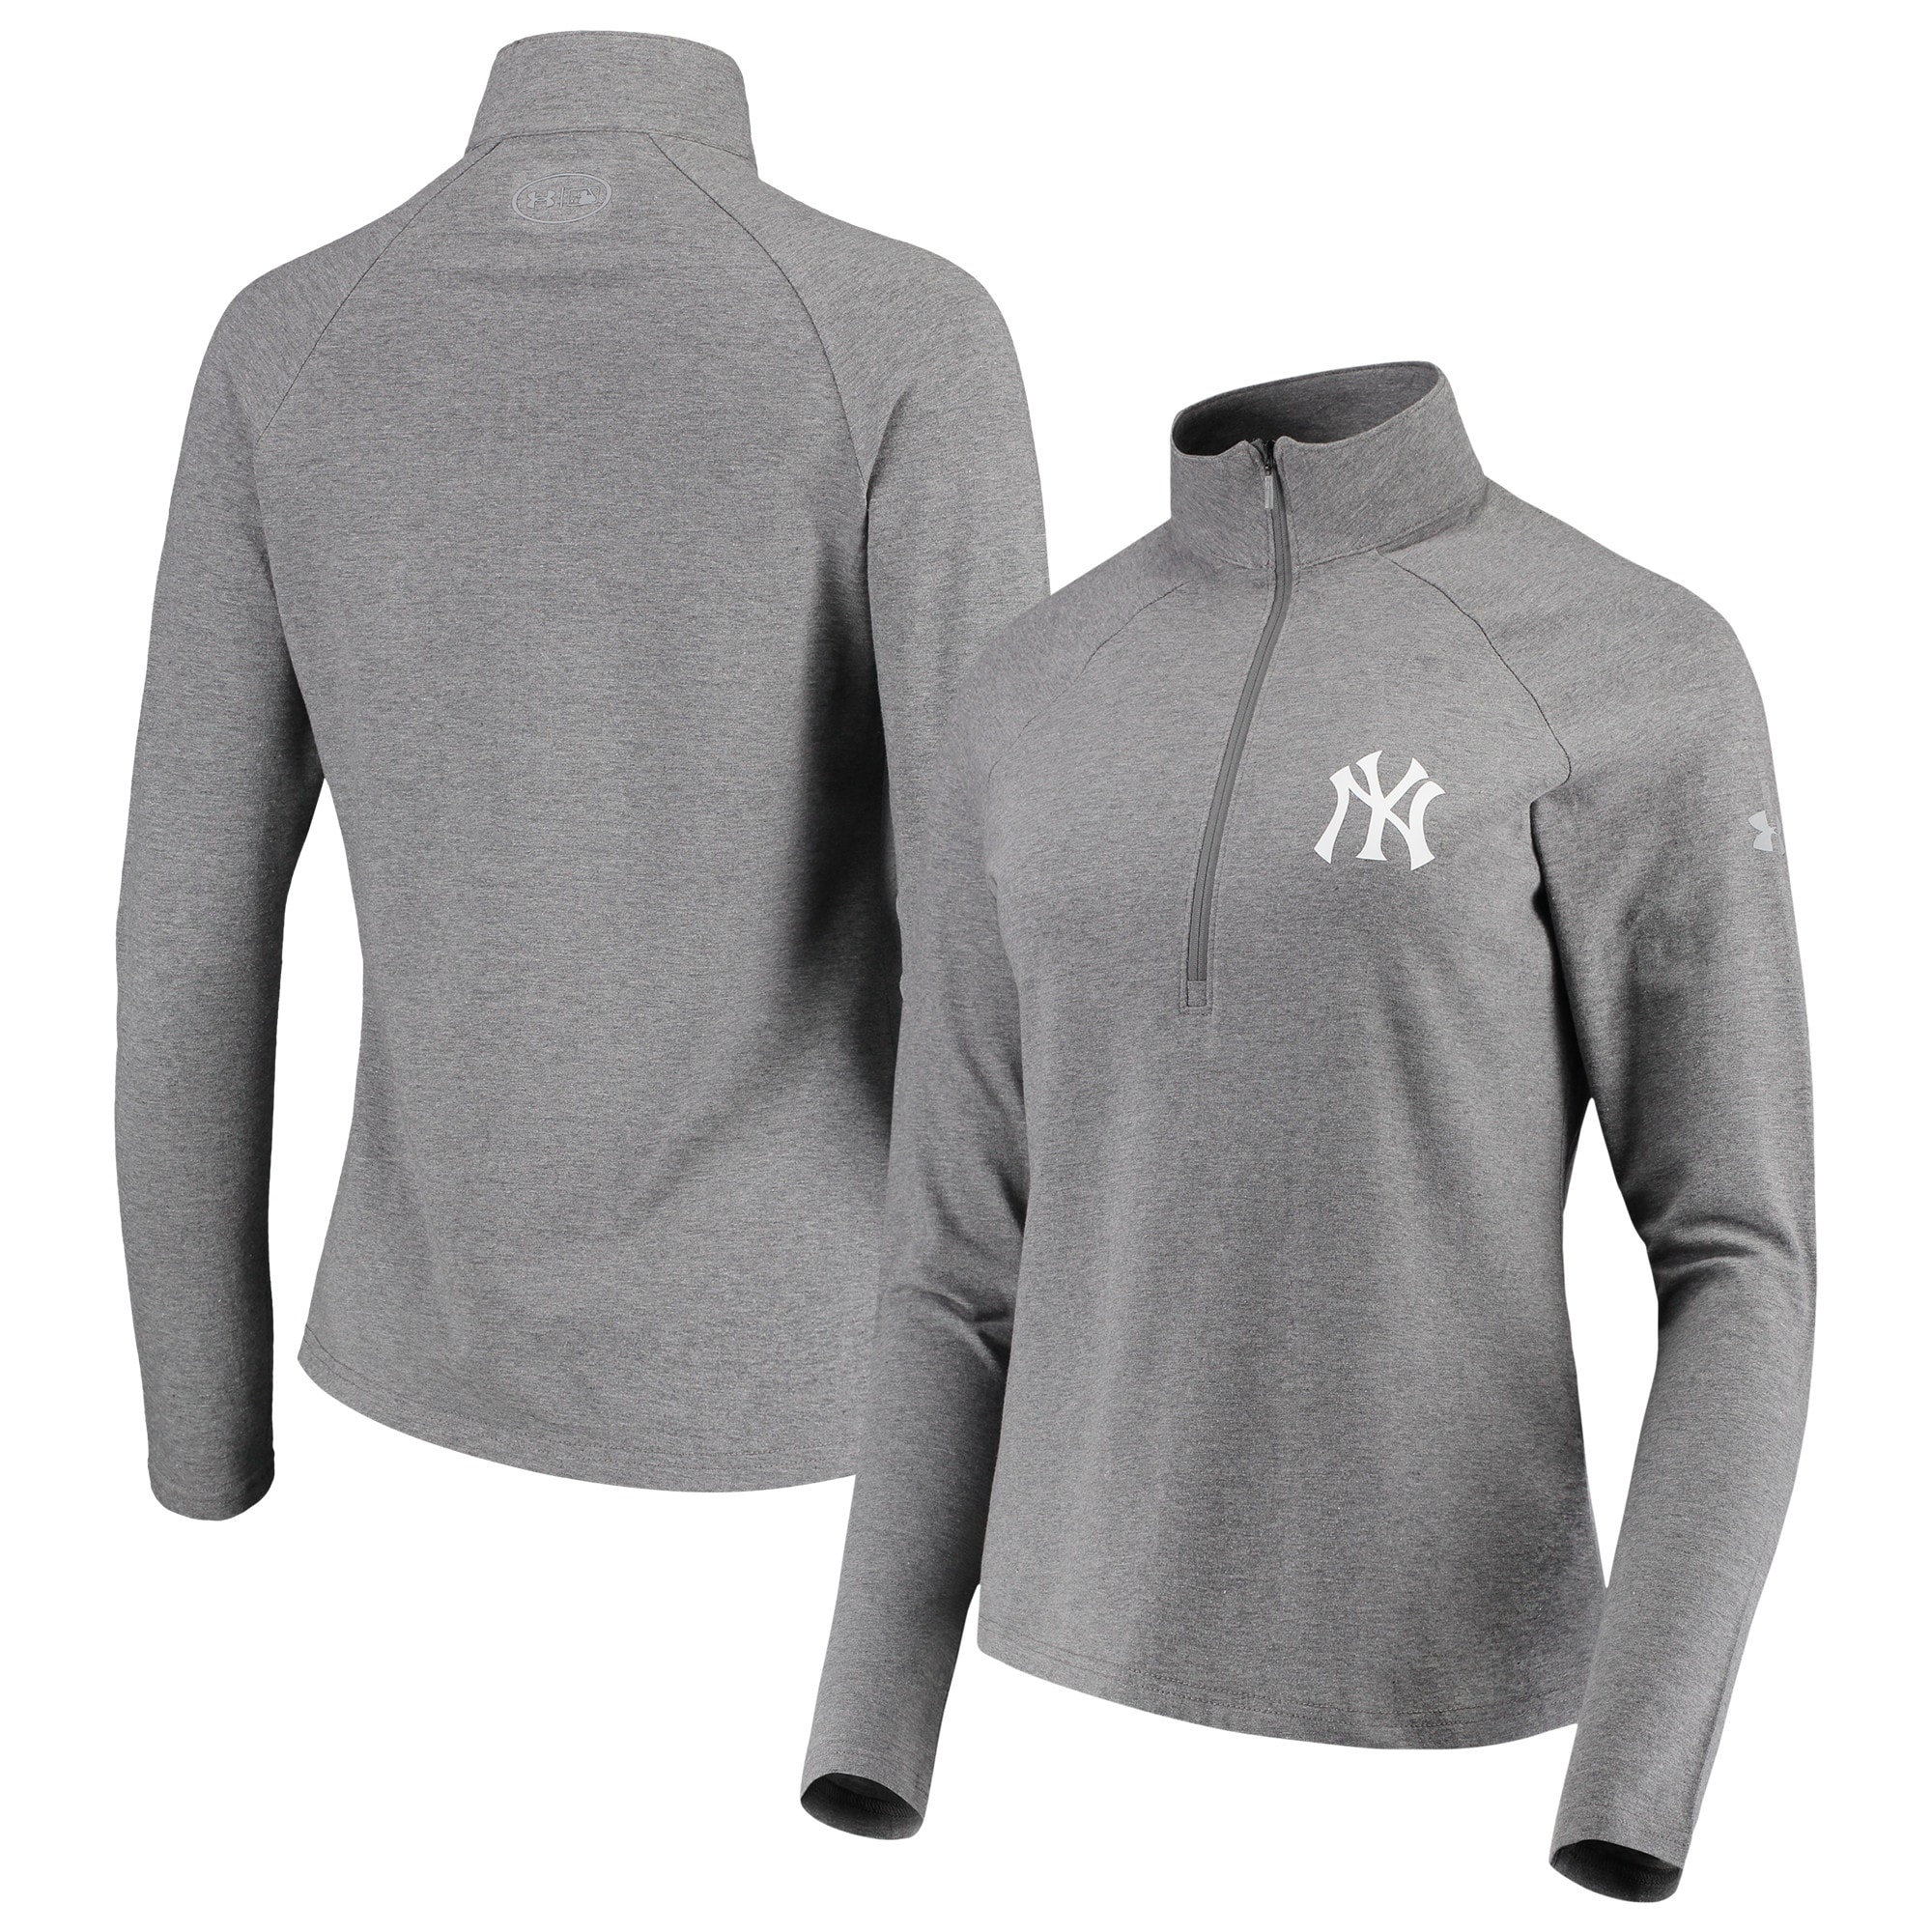 New York Yankees Under Armour Women's Passion Performance Tri-Blend Raglan Half-Zip Pullover Jacket - Heathered Gray